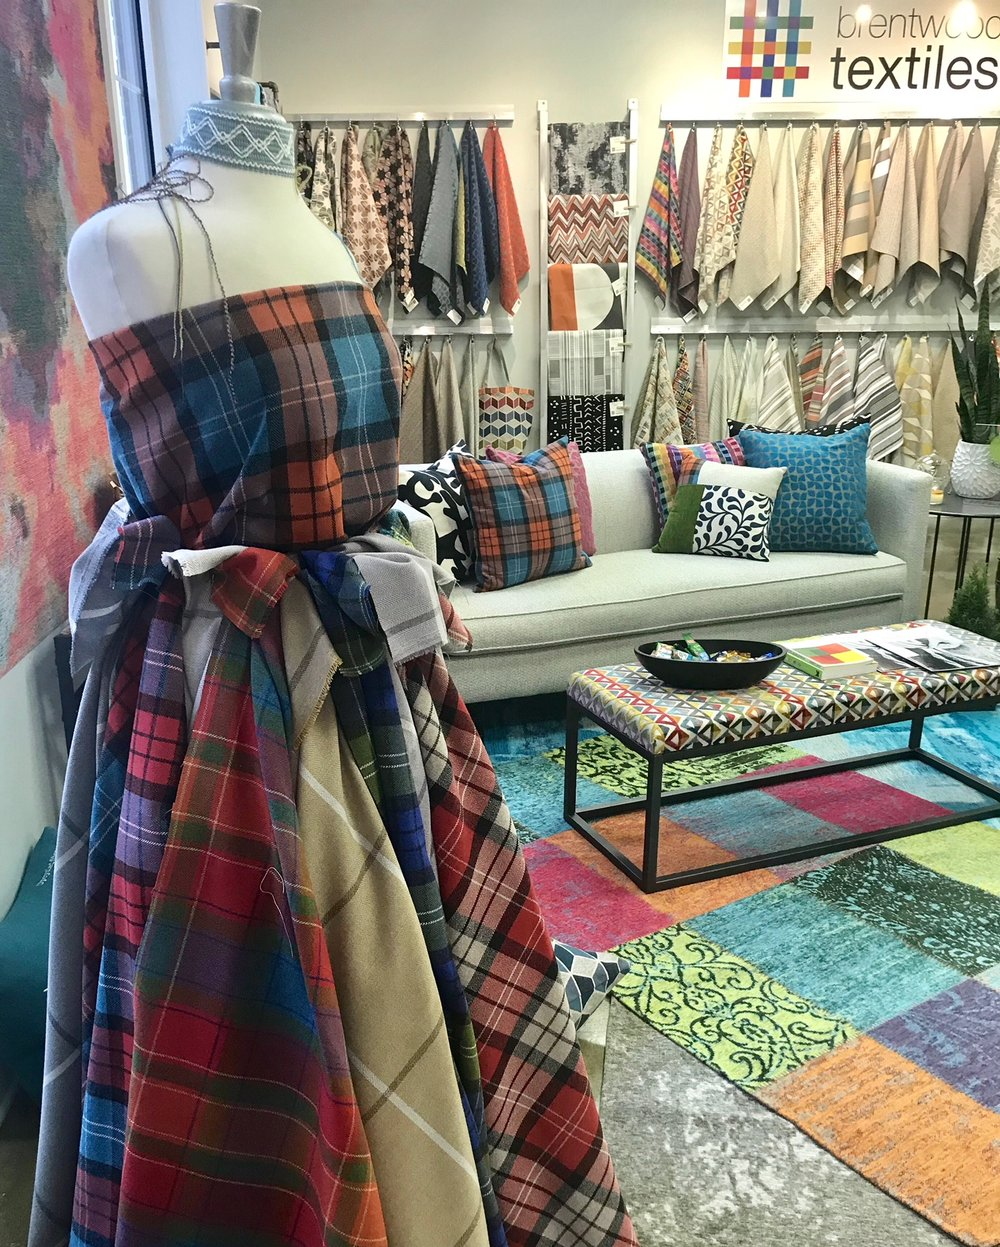 Layered, patchwork floor cloths in the Brentwood show room in High Point, NC